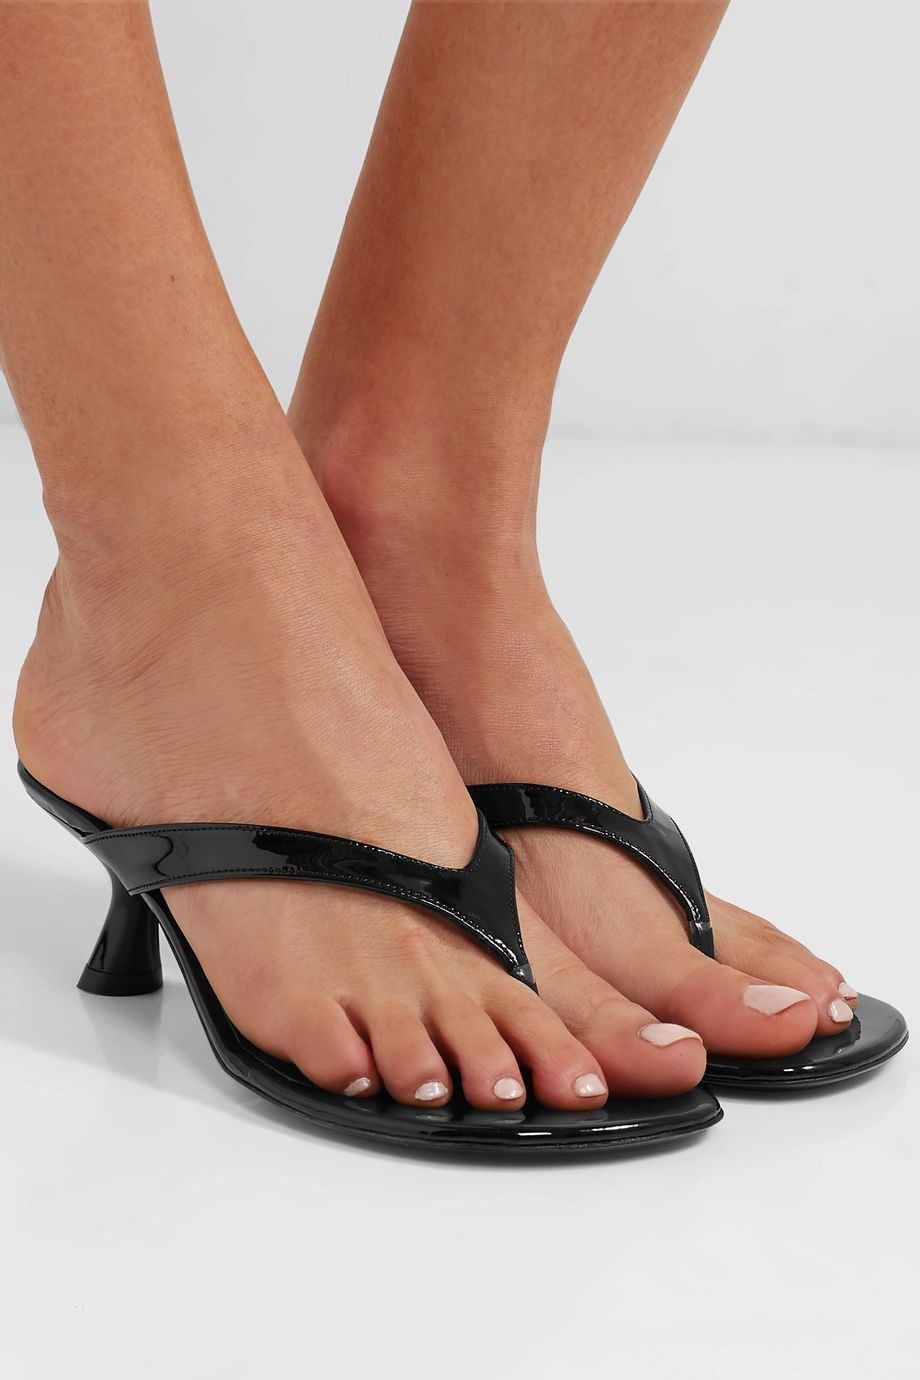 unknown Beep patent-leather sandals